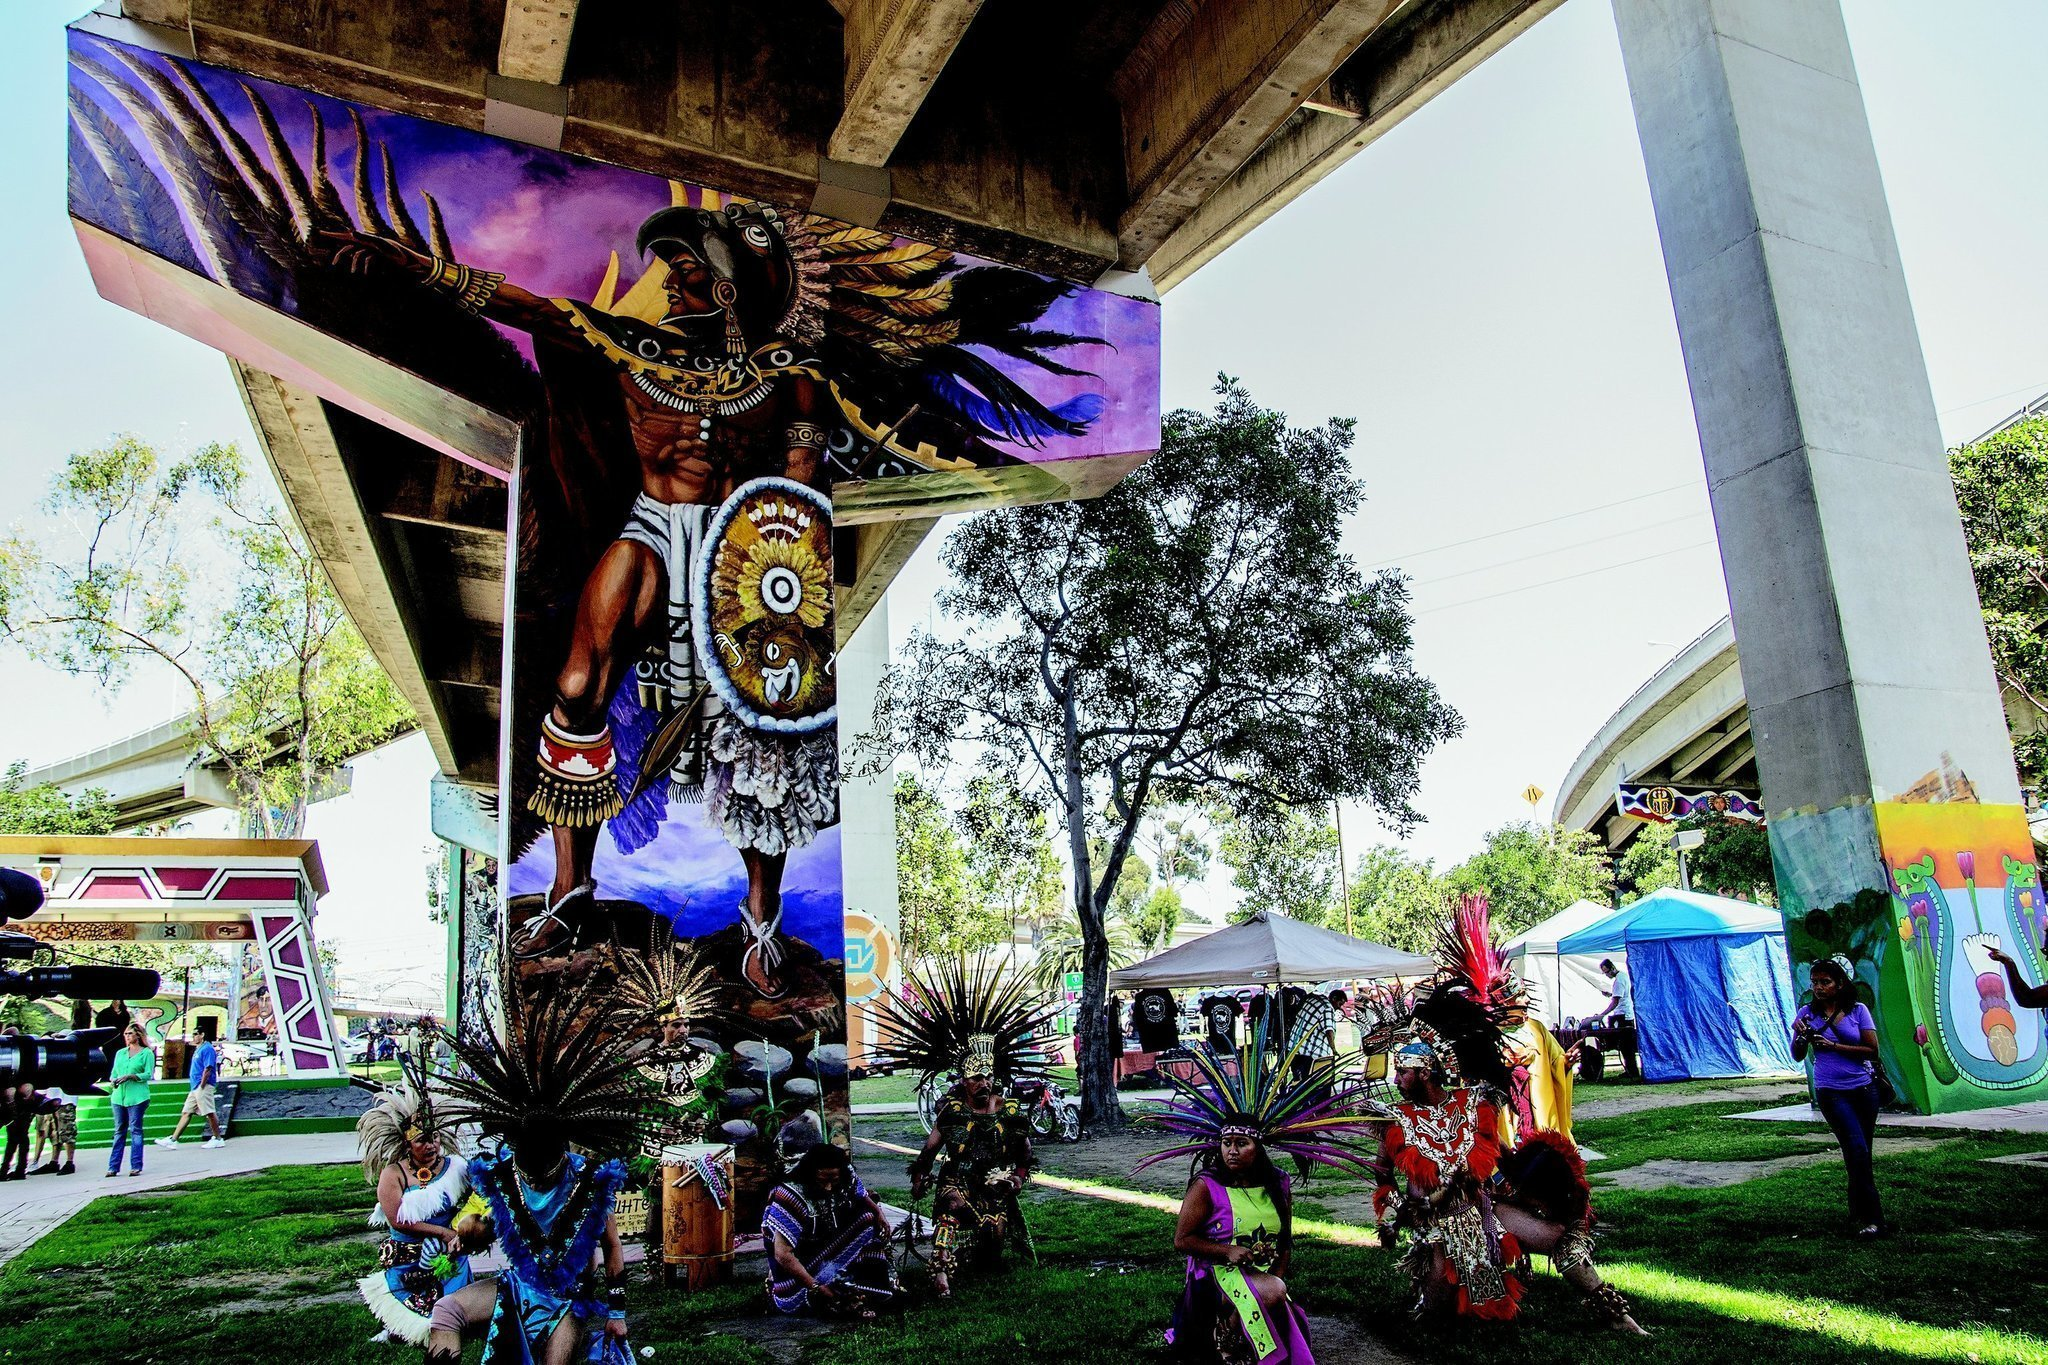 Historic milestone for chicano park the san diego union for Chicano park mural